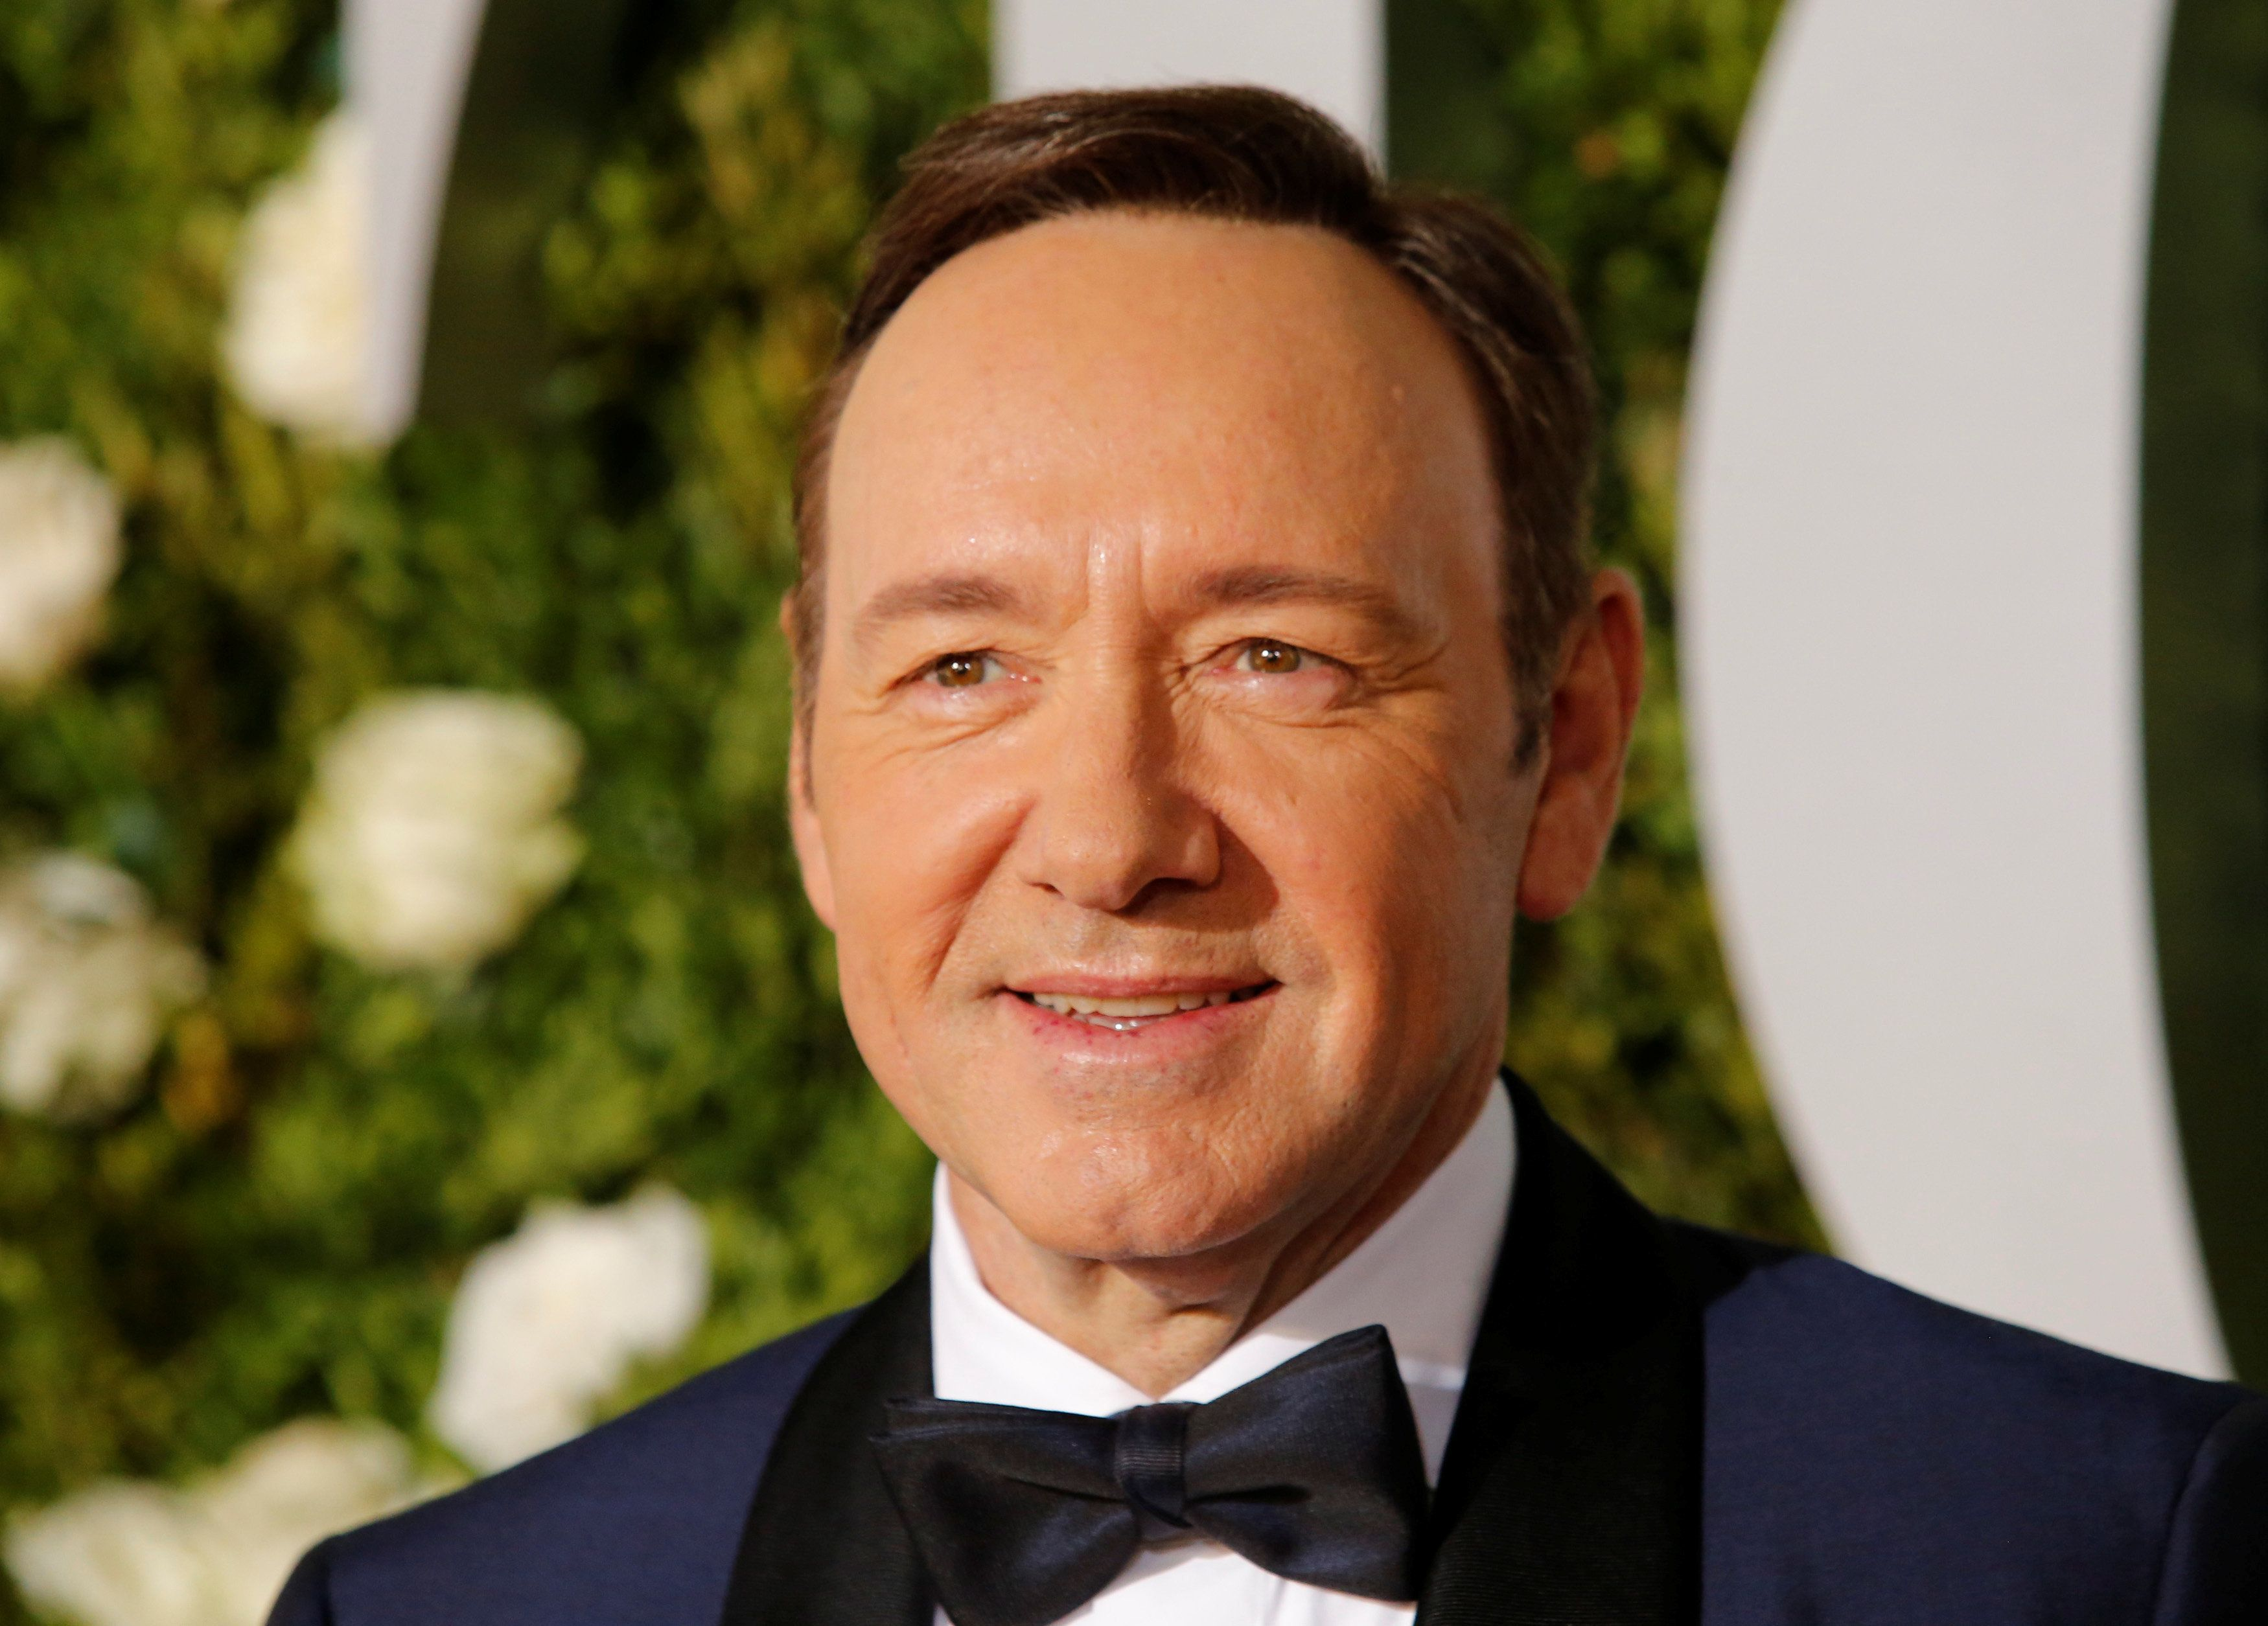 ABYSMAL: Kevin Spacey's First Movie Since #MeToo Earned Less Than $130 On Opening